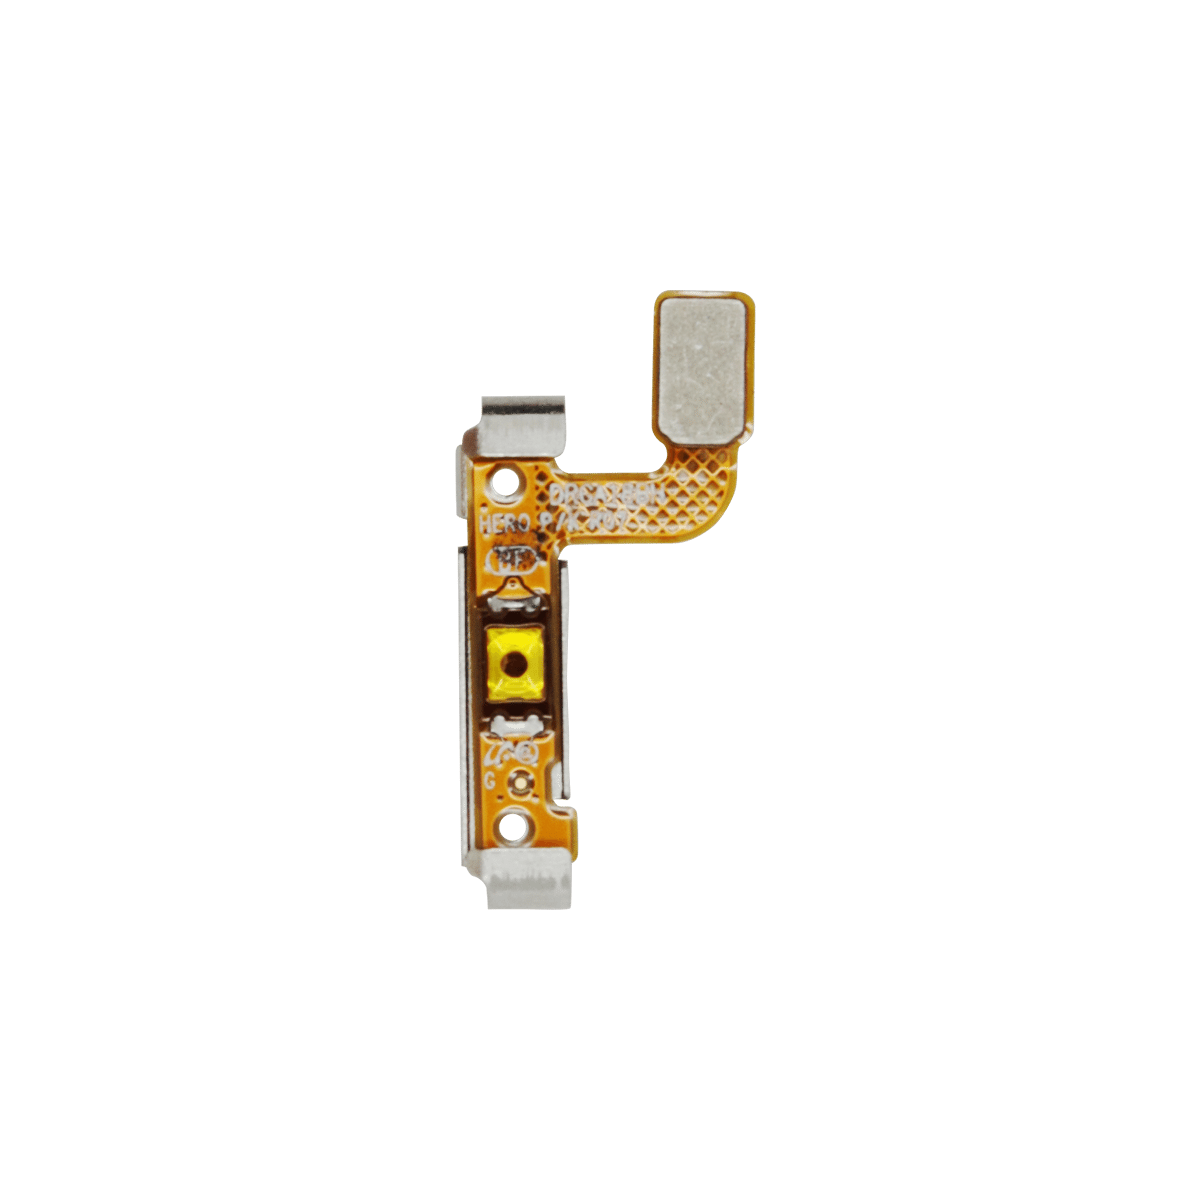 Samsung Galaxy S7 Power Button Flex Cable Replacement